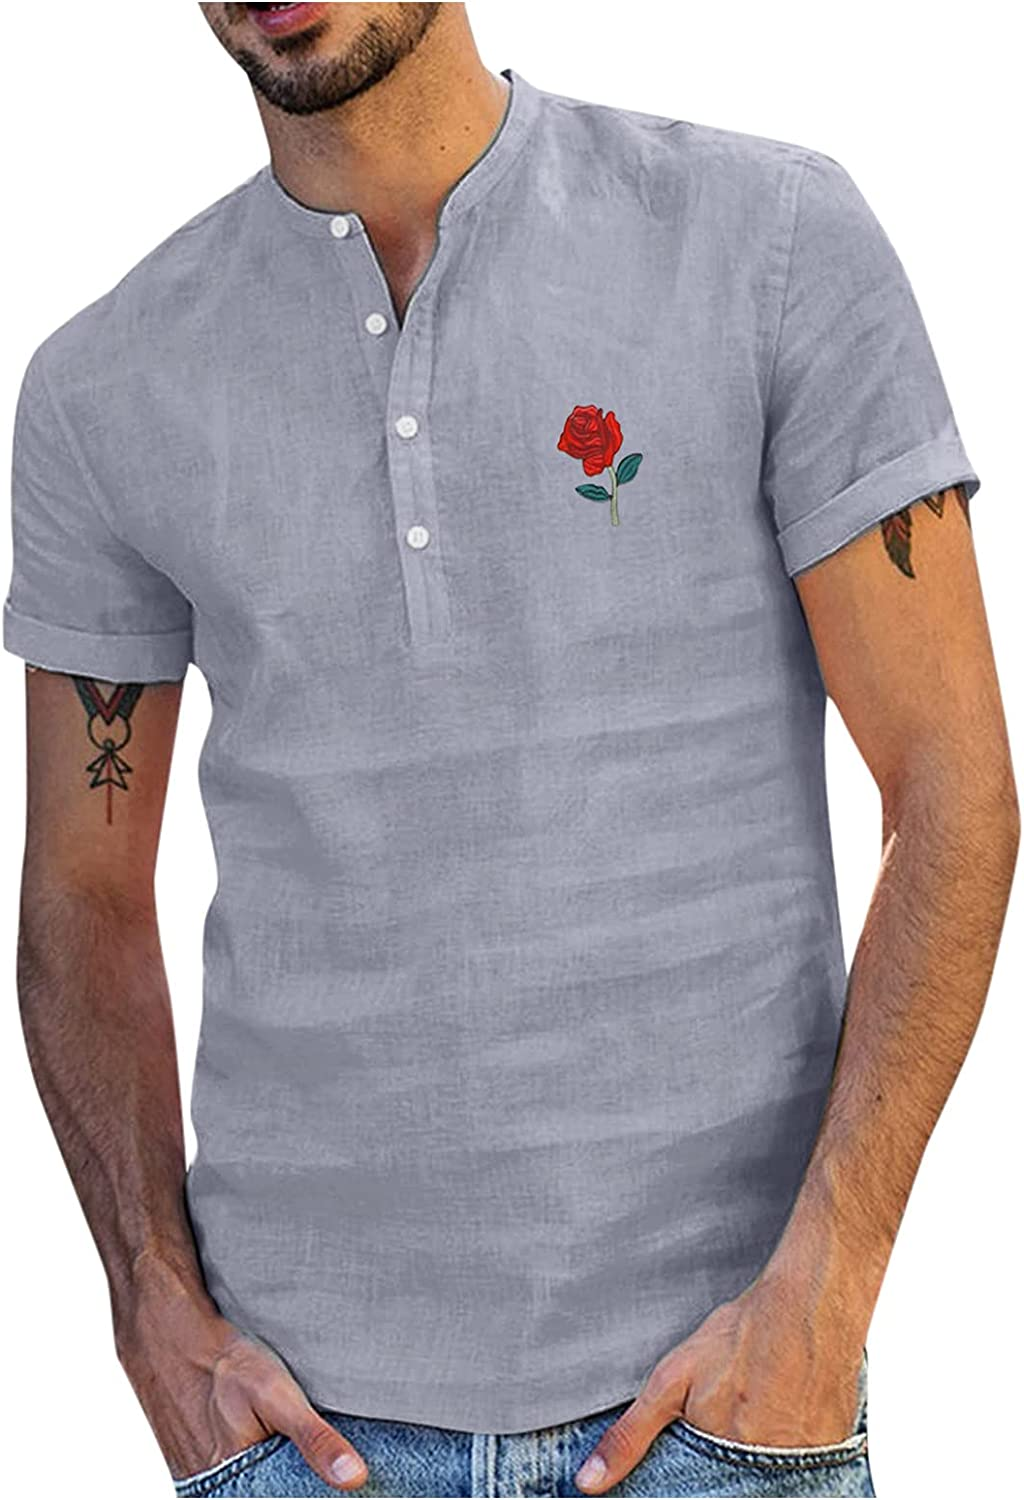 WOCACHI Short Sleeve Casual Shirts for Mens, Rose Print Front Placket Button-up Stand Collar Henley Tops Tshirts